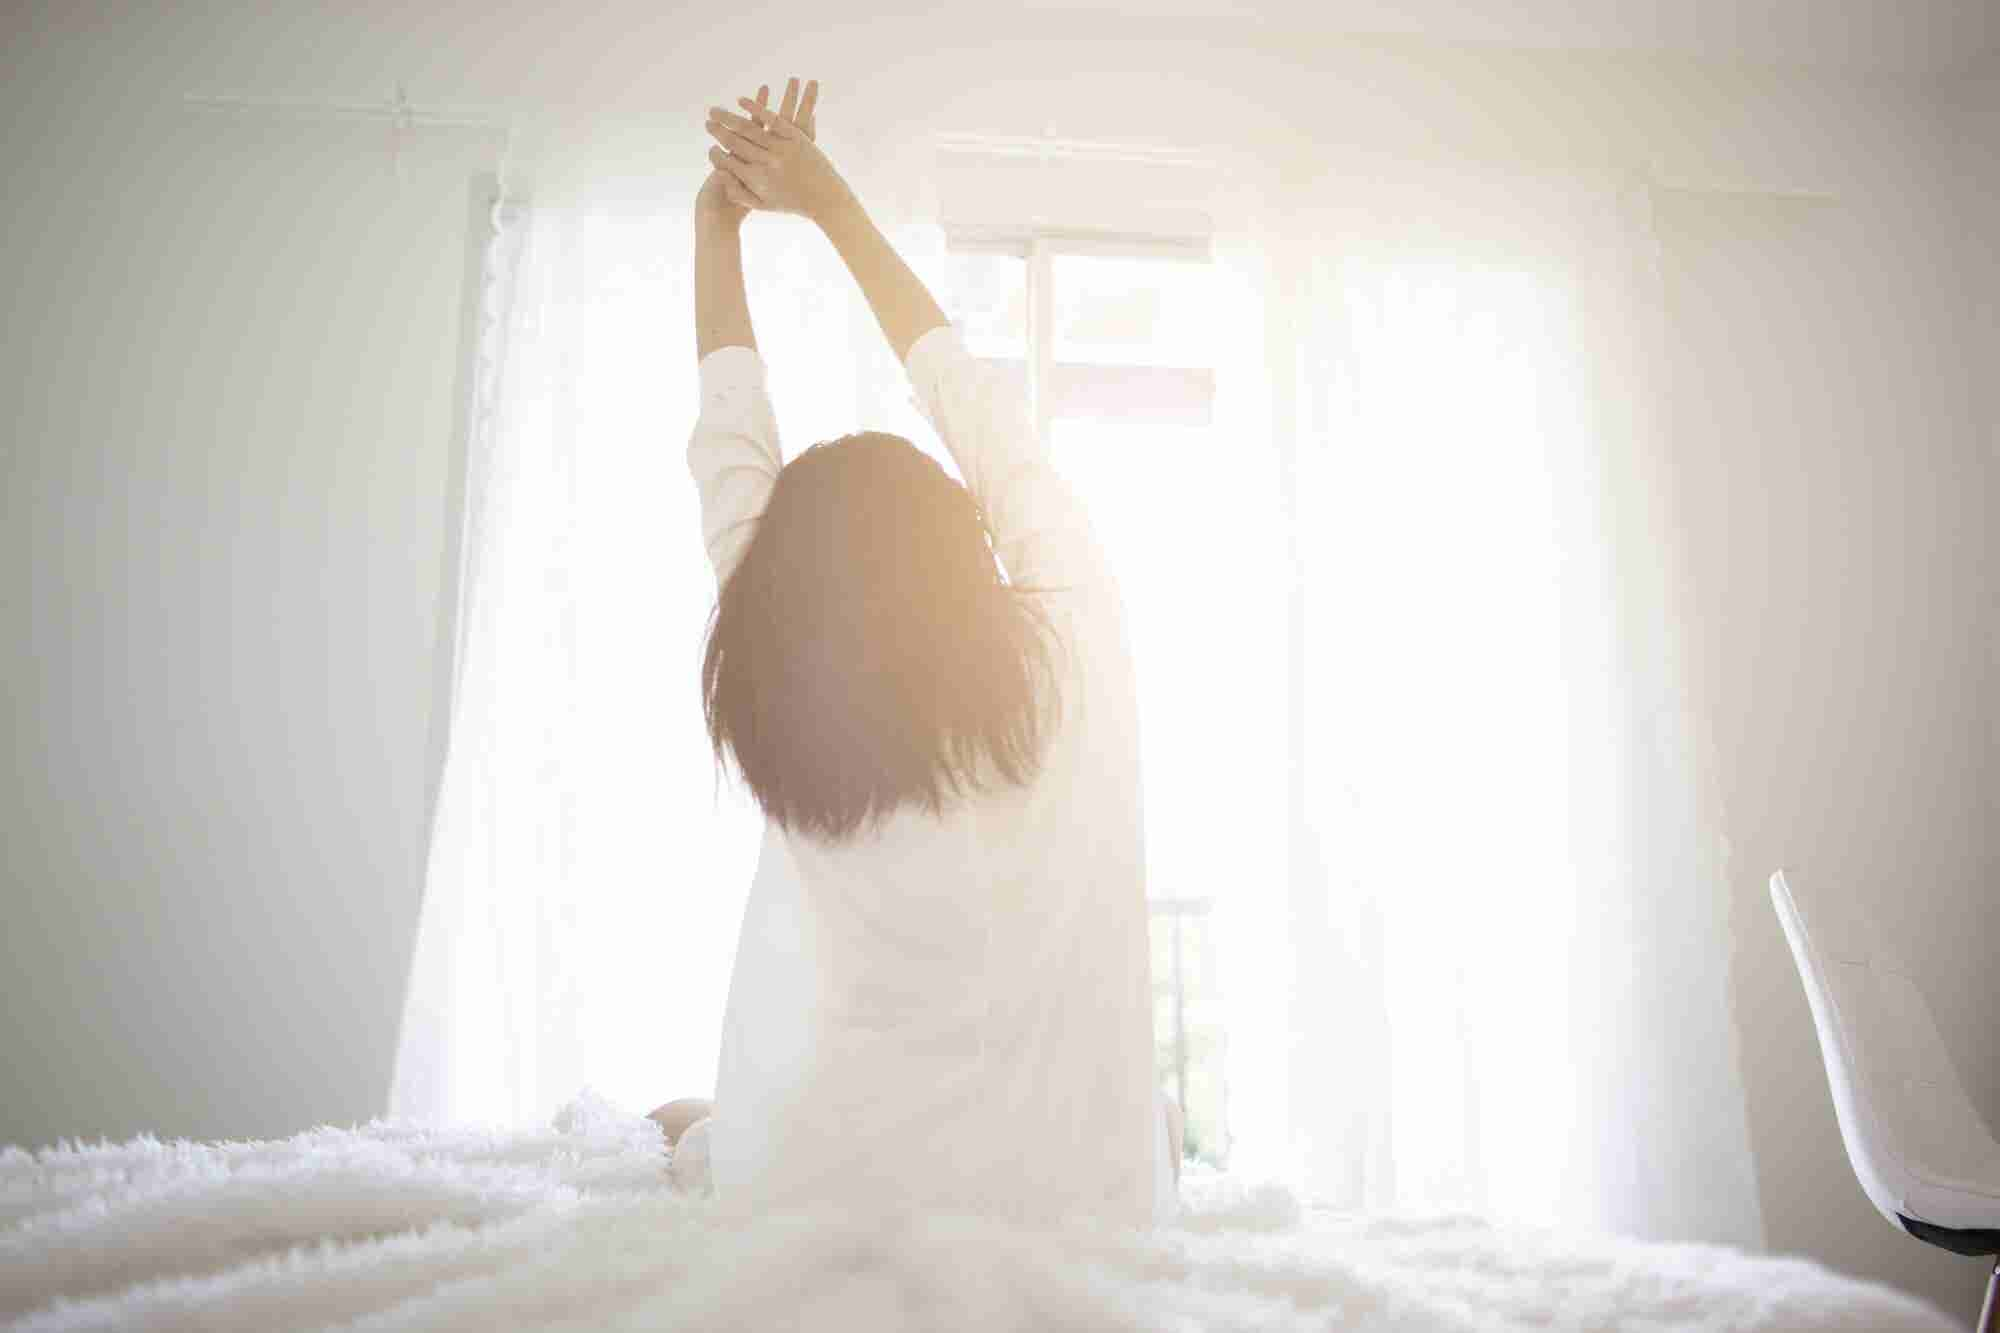 Good Sleep Starts the Moment You Wake Up, So Follow These 4 Tips From Sleep Experts